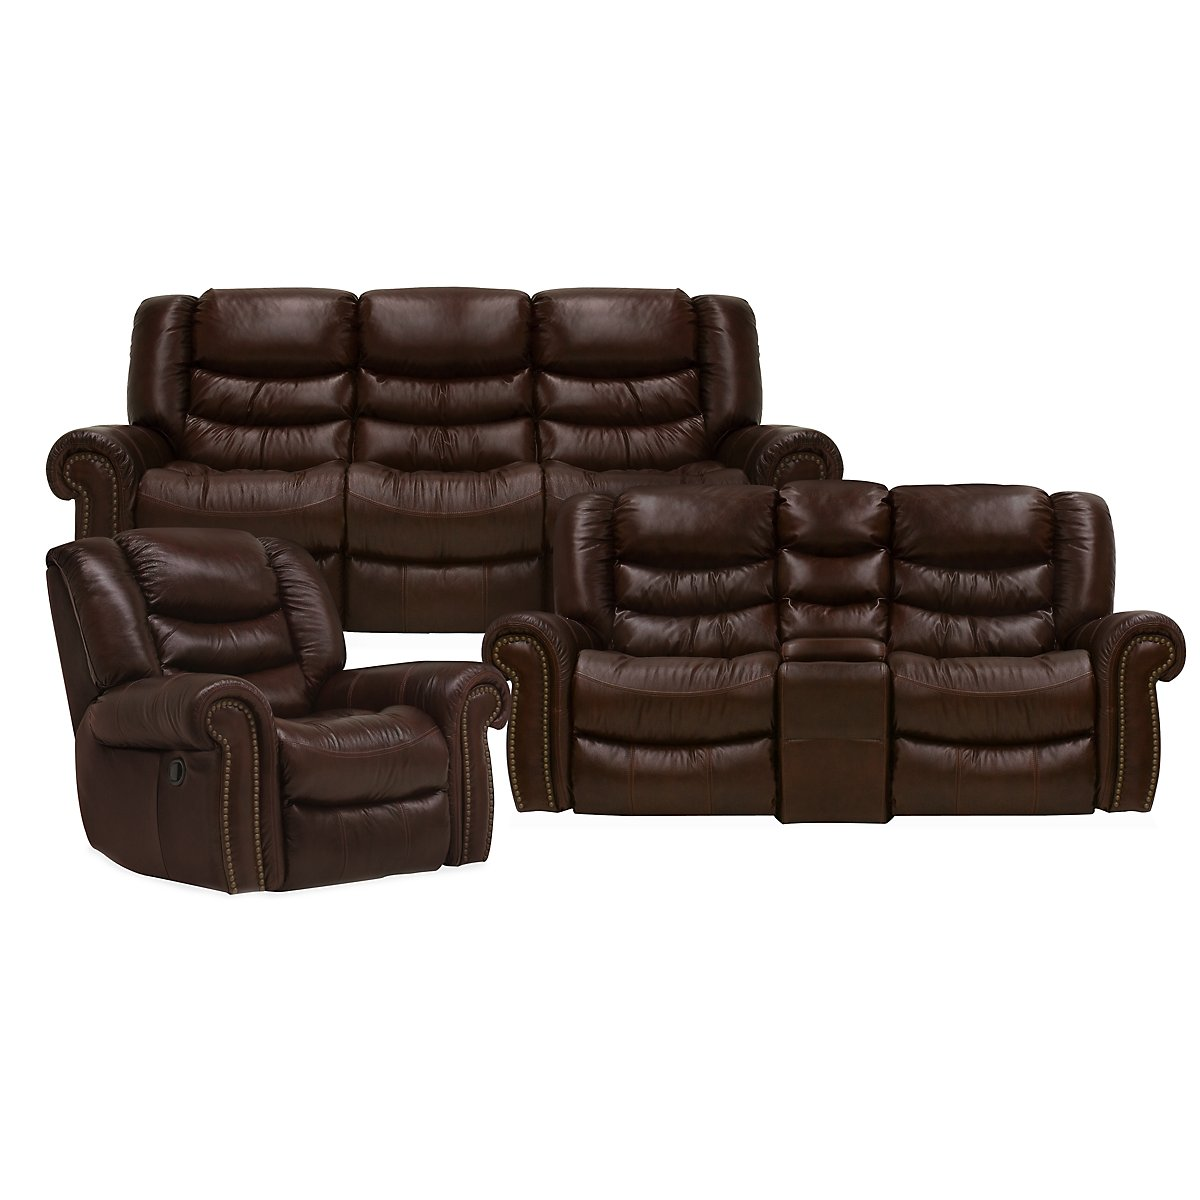 Peyton2 Dk Brown Leather & Vinyl Power Reclining Living Room